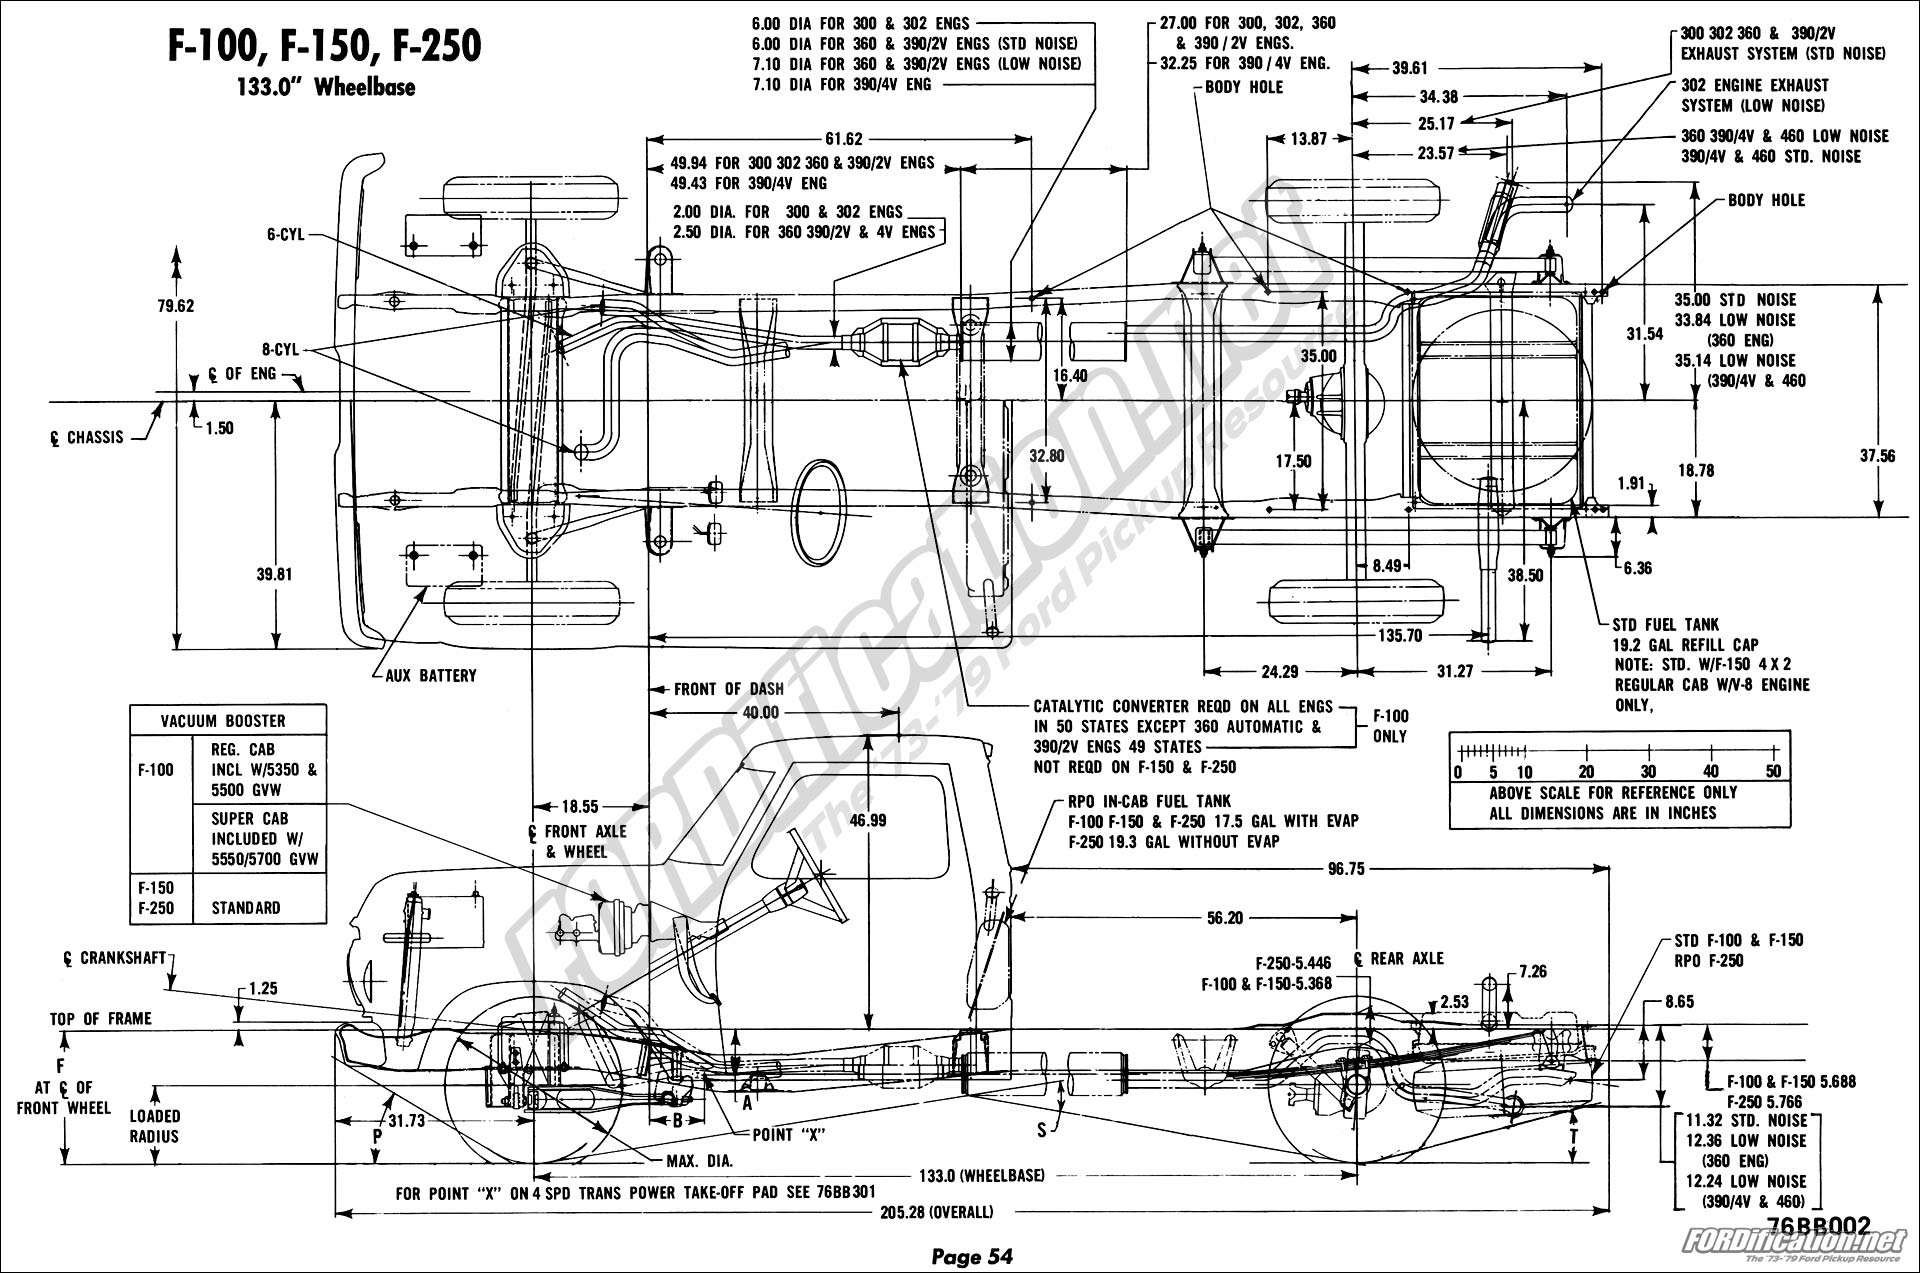 Schematics b also Ford Mustang F150 F250 Thunderbird Chrome Radio Antenna Mast Rod Oem D3az18a886a I1750616 together with Ford Focus 2 0 1995 Specs And Images further T9821539 Fan relay as well 649258 1980 9 9hp Evinrude Kill Switch. on 1998 ford thunderbird